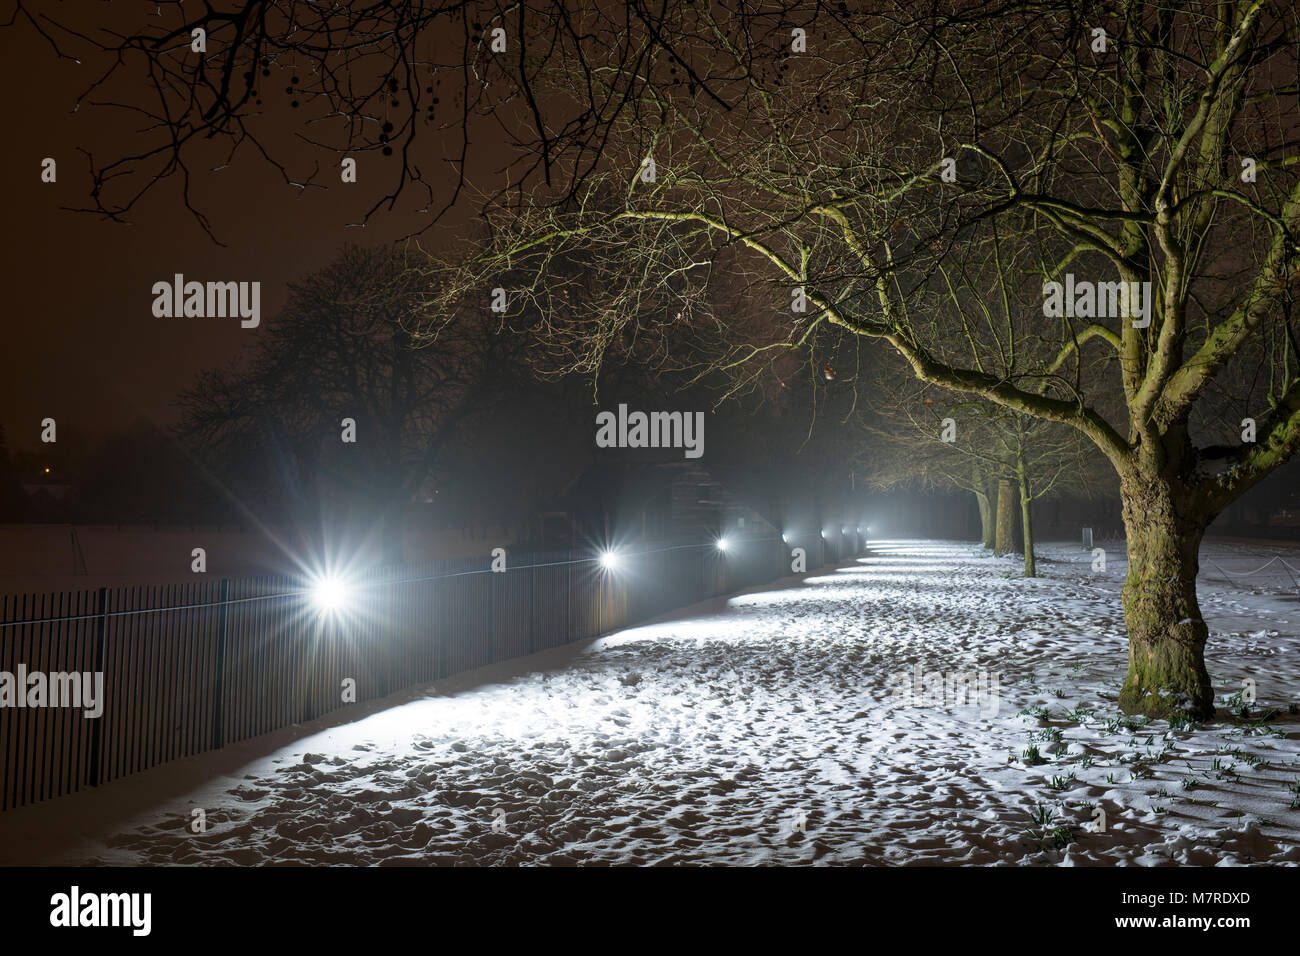 Winter trees along broad walk in the snow early morning before dawn. Merton college, Oxford, Oxfordshire, England - Stock Image